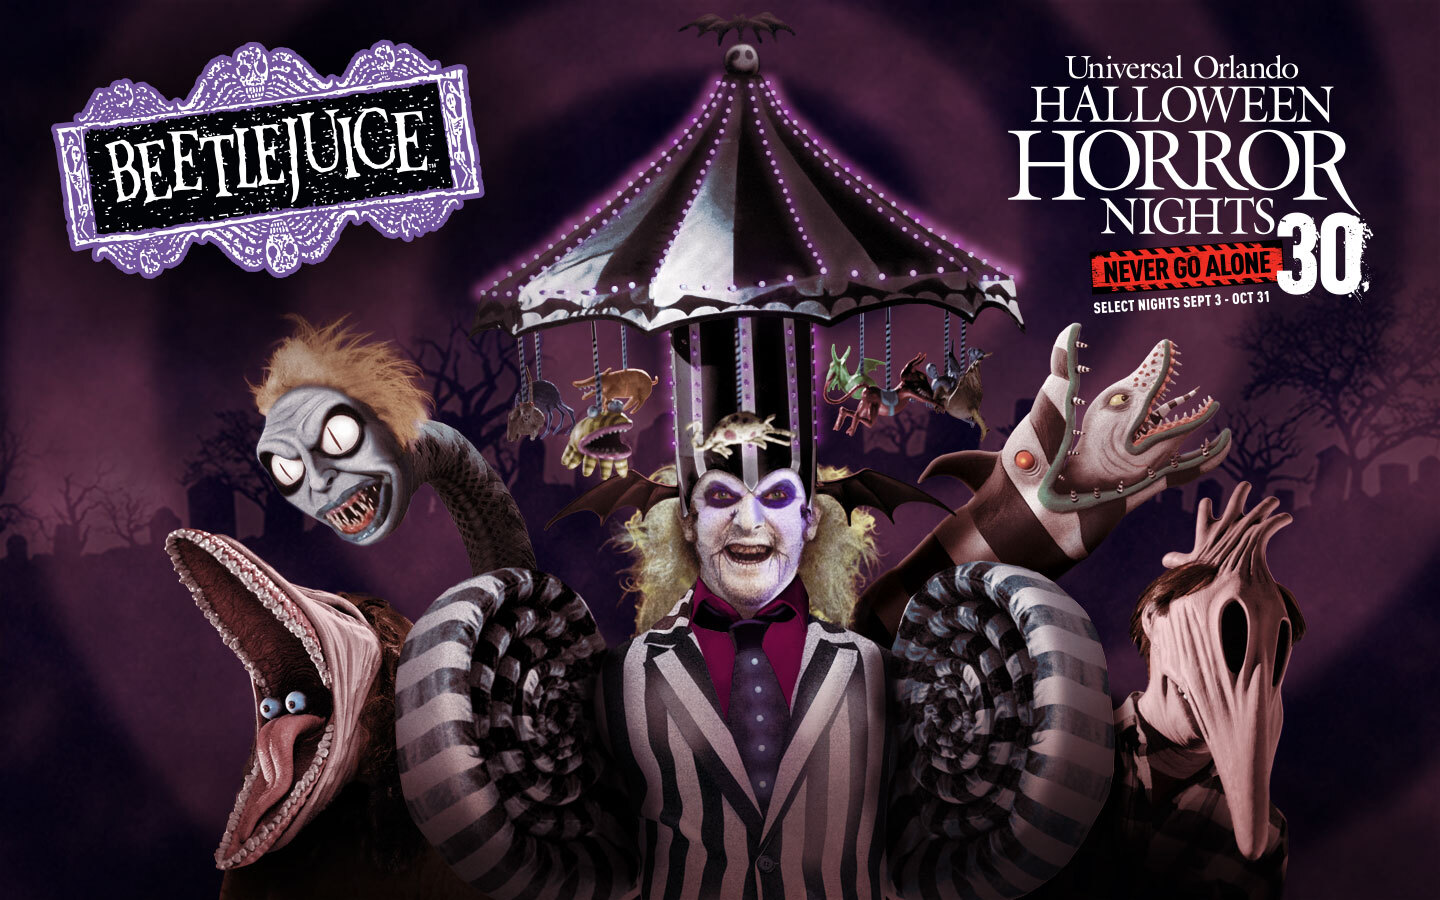 Get Your Tickets Tickets Now for Halloween Horror Nights 30 at Universal Studios Florida